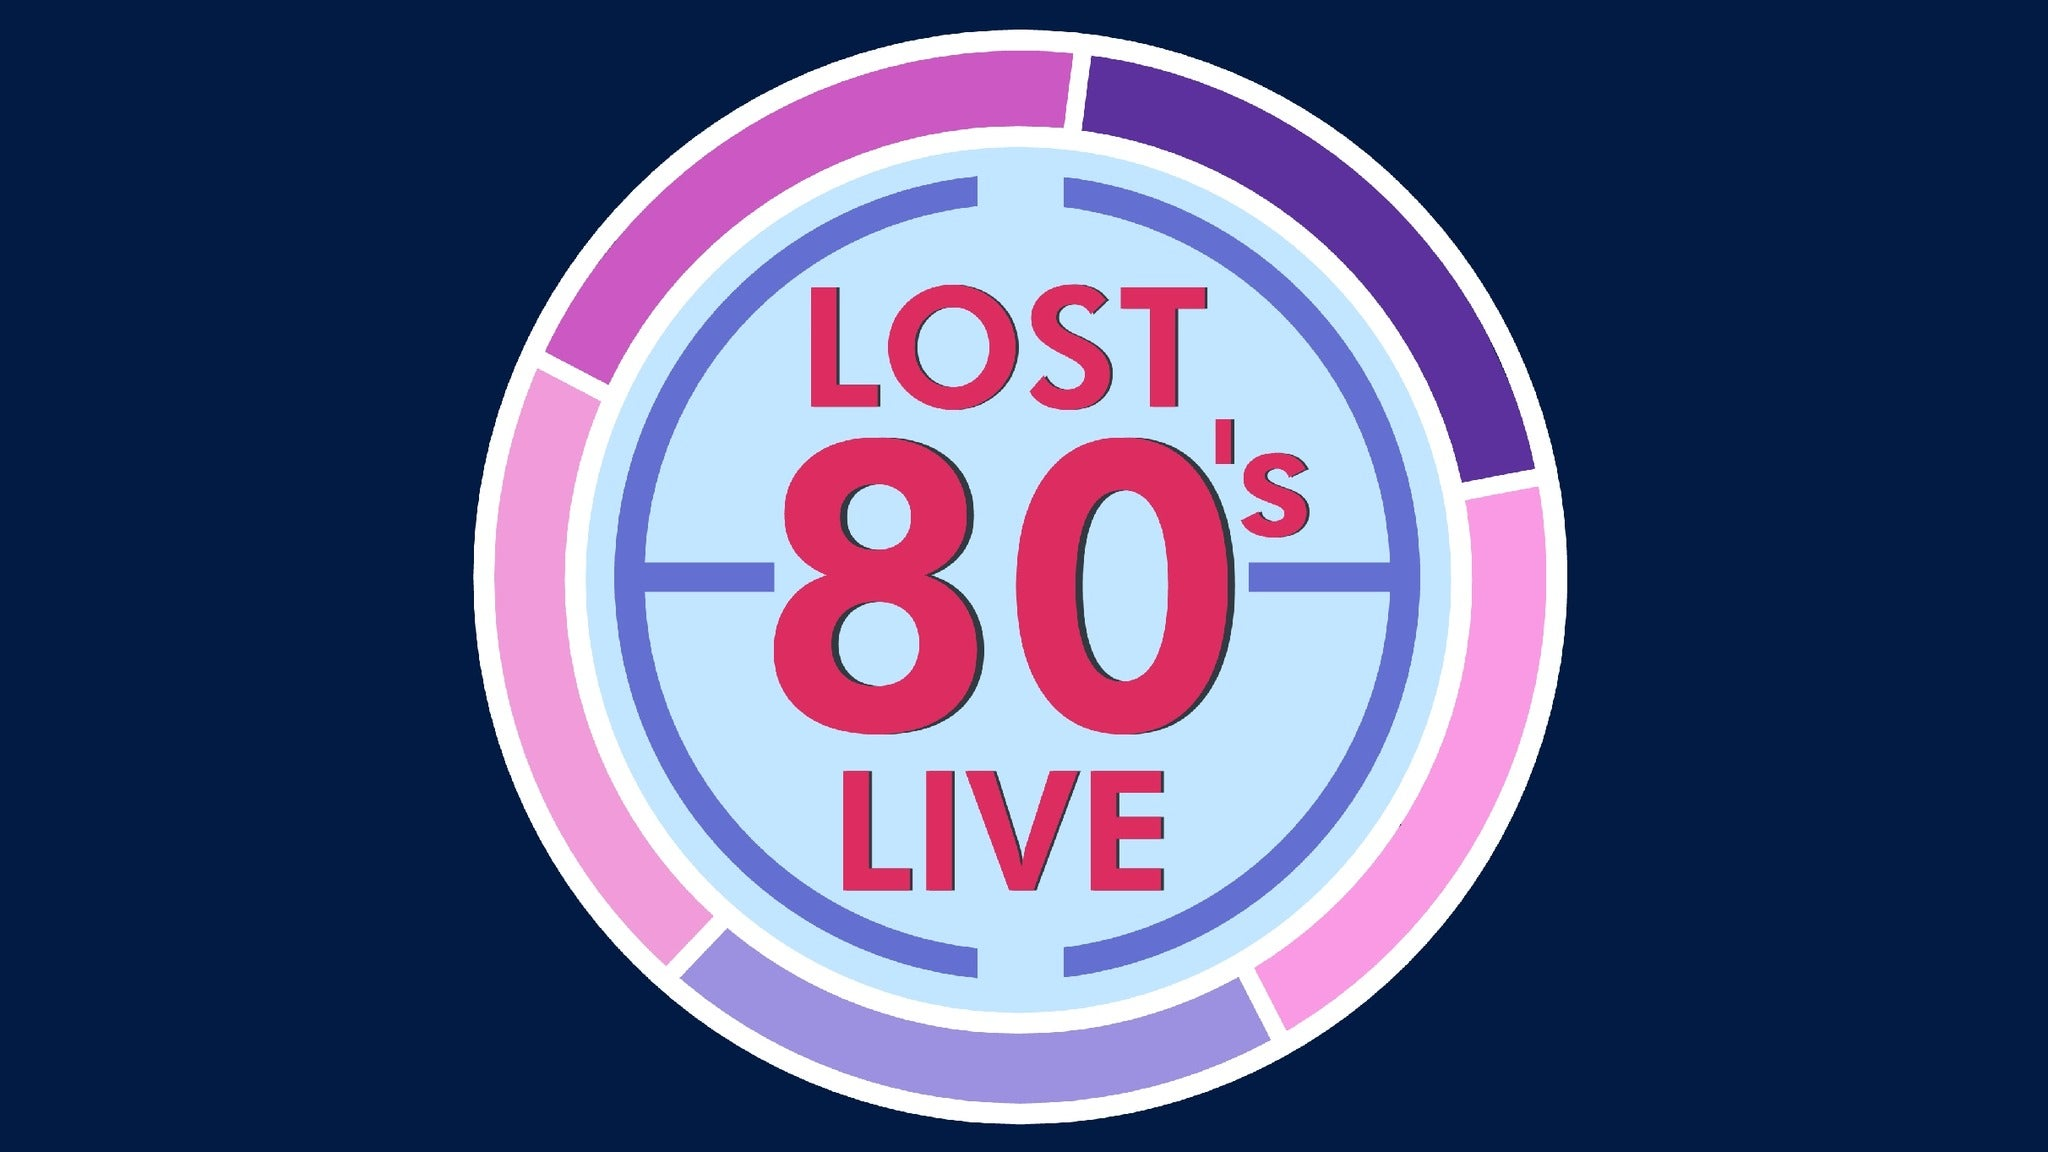 Lost 80's Live w/A Flock Of Seagulls plus 11 more